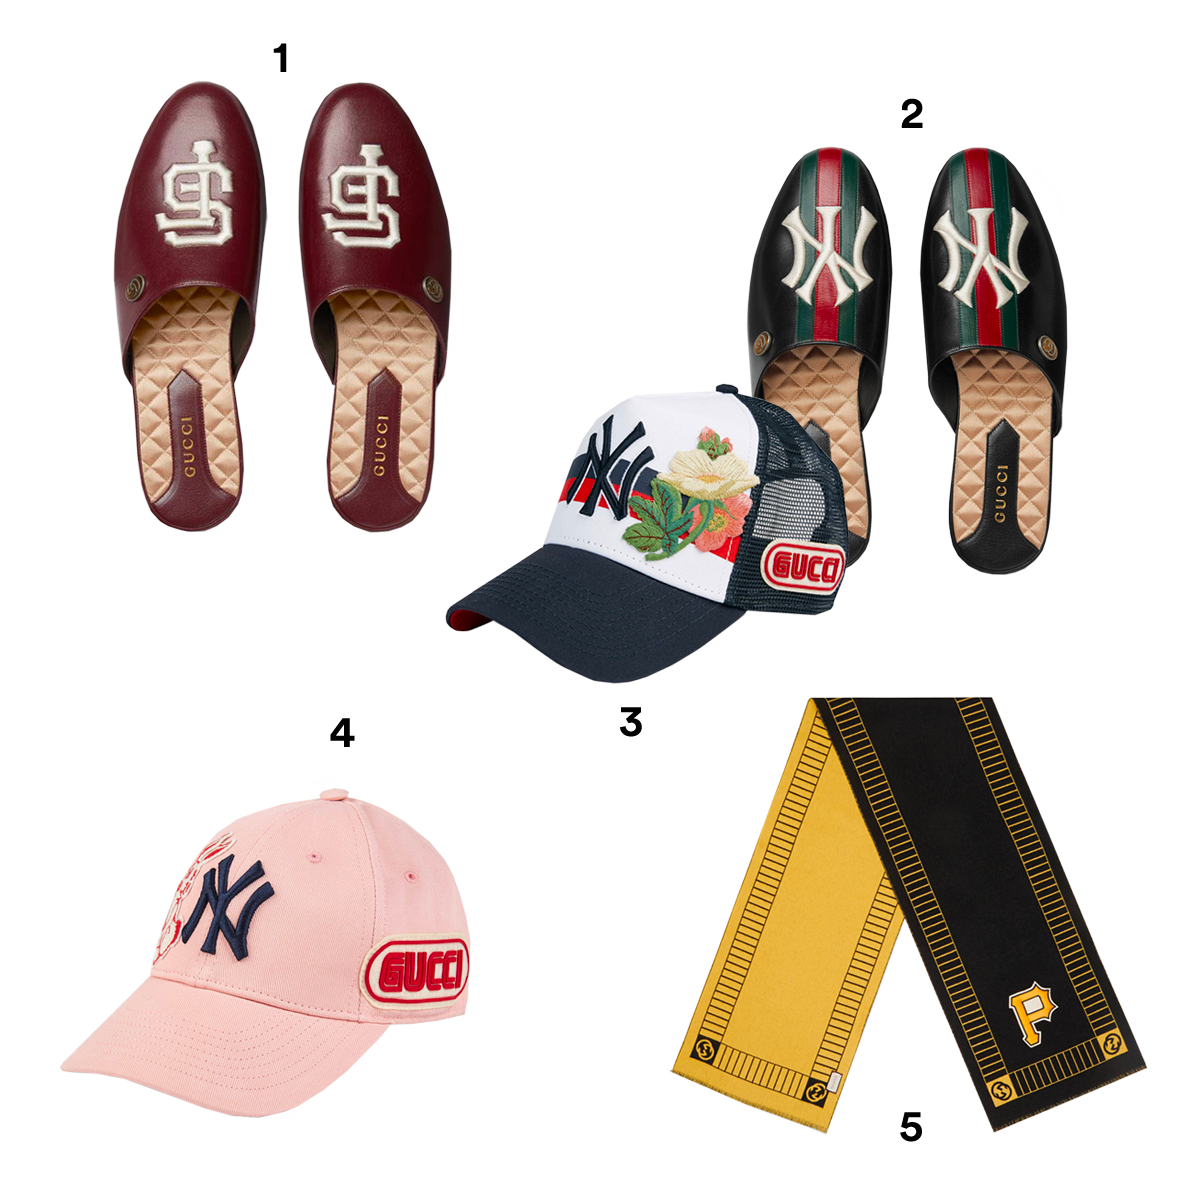 1) GUCCI X MLB Leather Slippers with SF Giants Patch, available at Gucci. 2) GUCCI X MLB Leather Slippers with NY Yankees Patch, available at Gucci. 3) GUCCI X MLB Black & White Baseball Cap with NY Yankees Patch, available at Gucci. 4) GUCCI X MLB Pink Baseball Cap with NY Yankees Patch, available at Gucci. 5) GUCCI X MLB Wool Scarf with Pittsburgh Pirates Patch, available at Gucci.